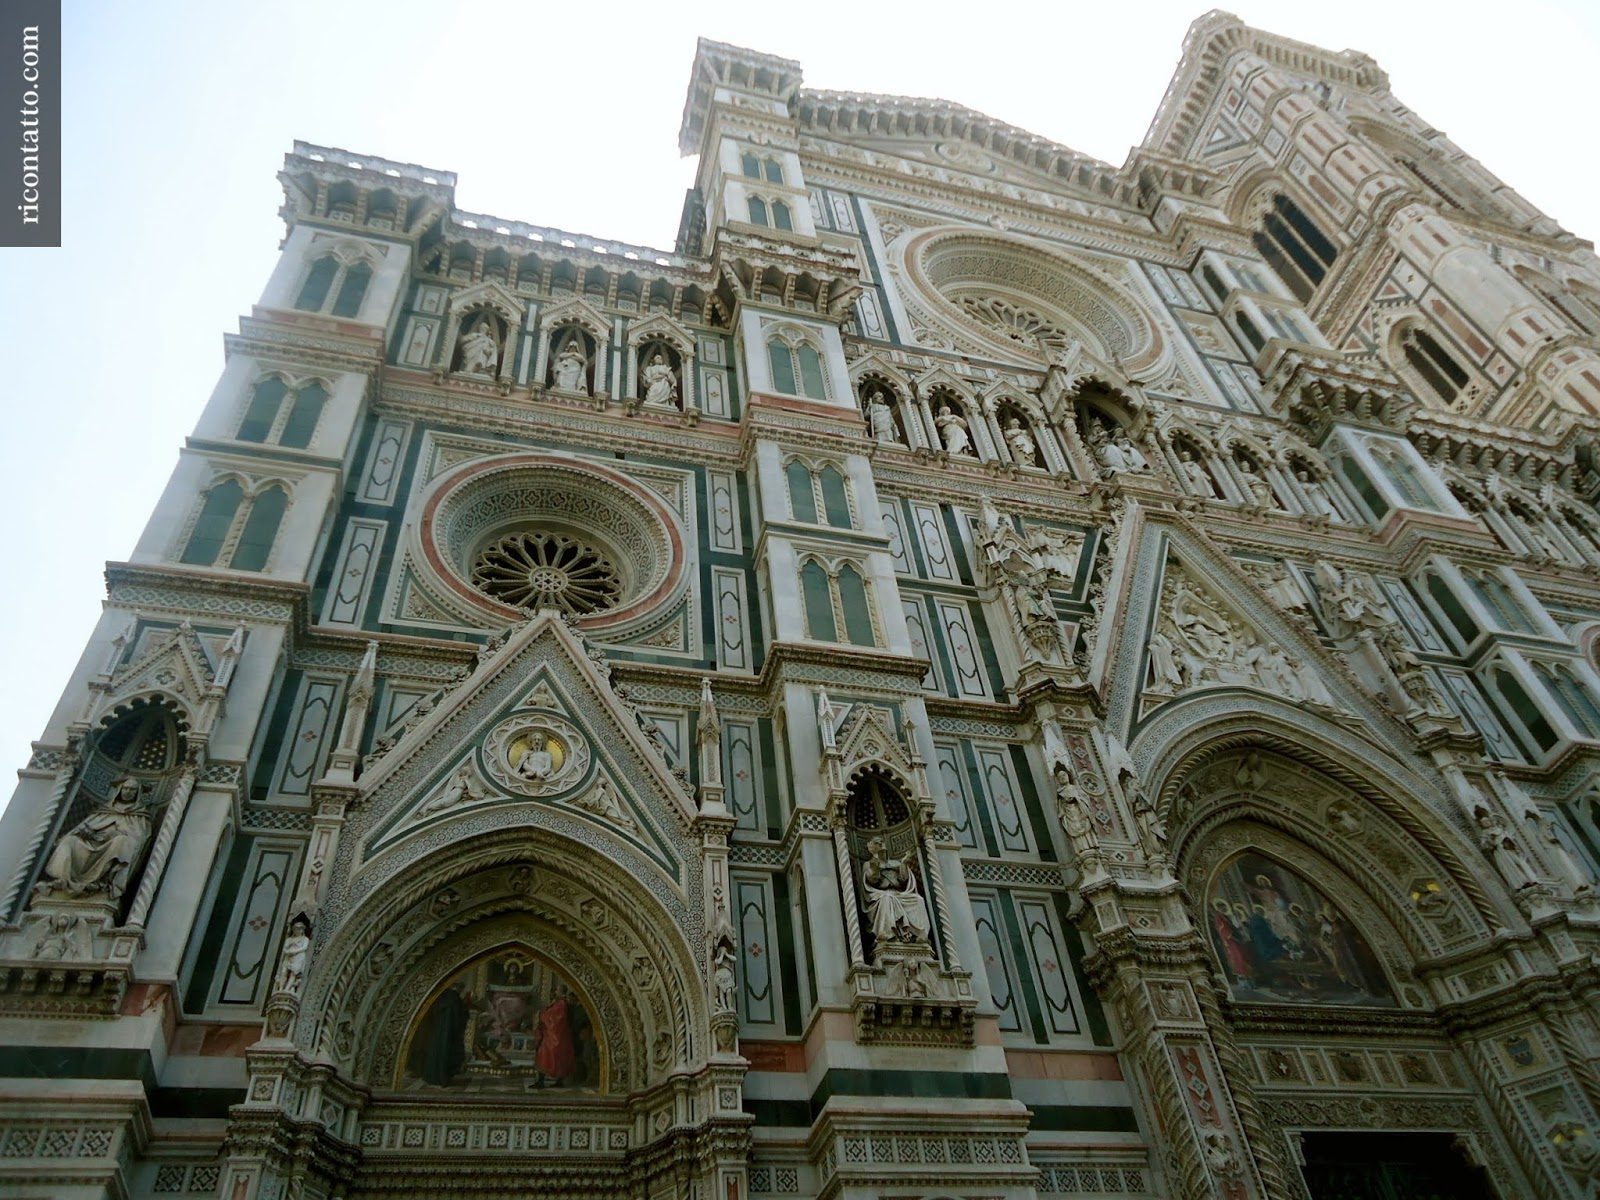 Firenze, Toscana, Italy - Photo #04 by Ricontatto.com